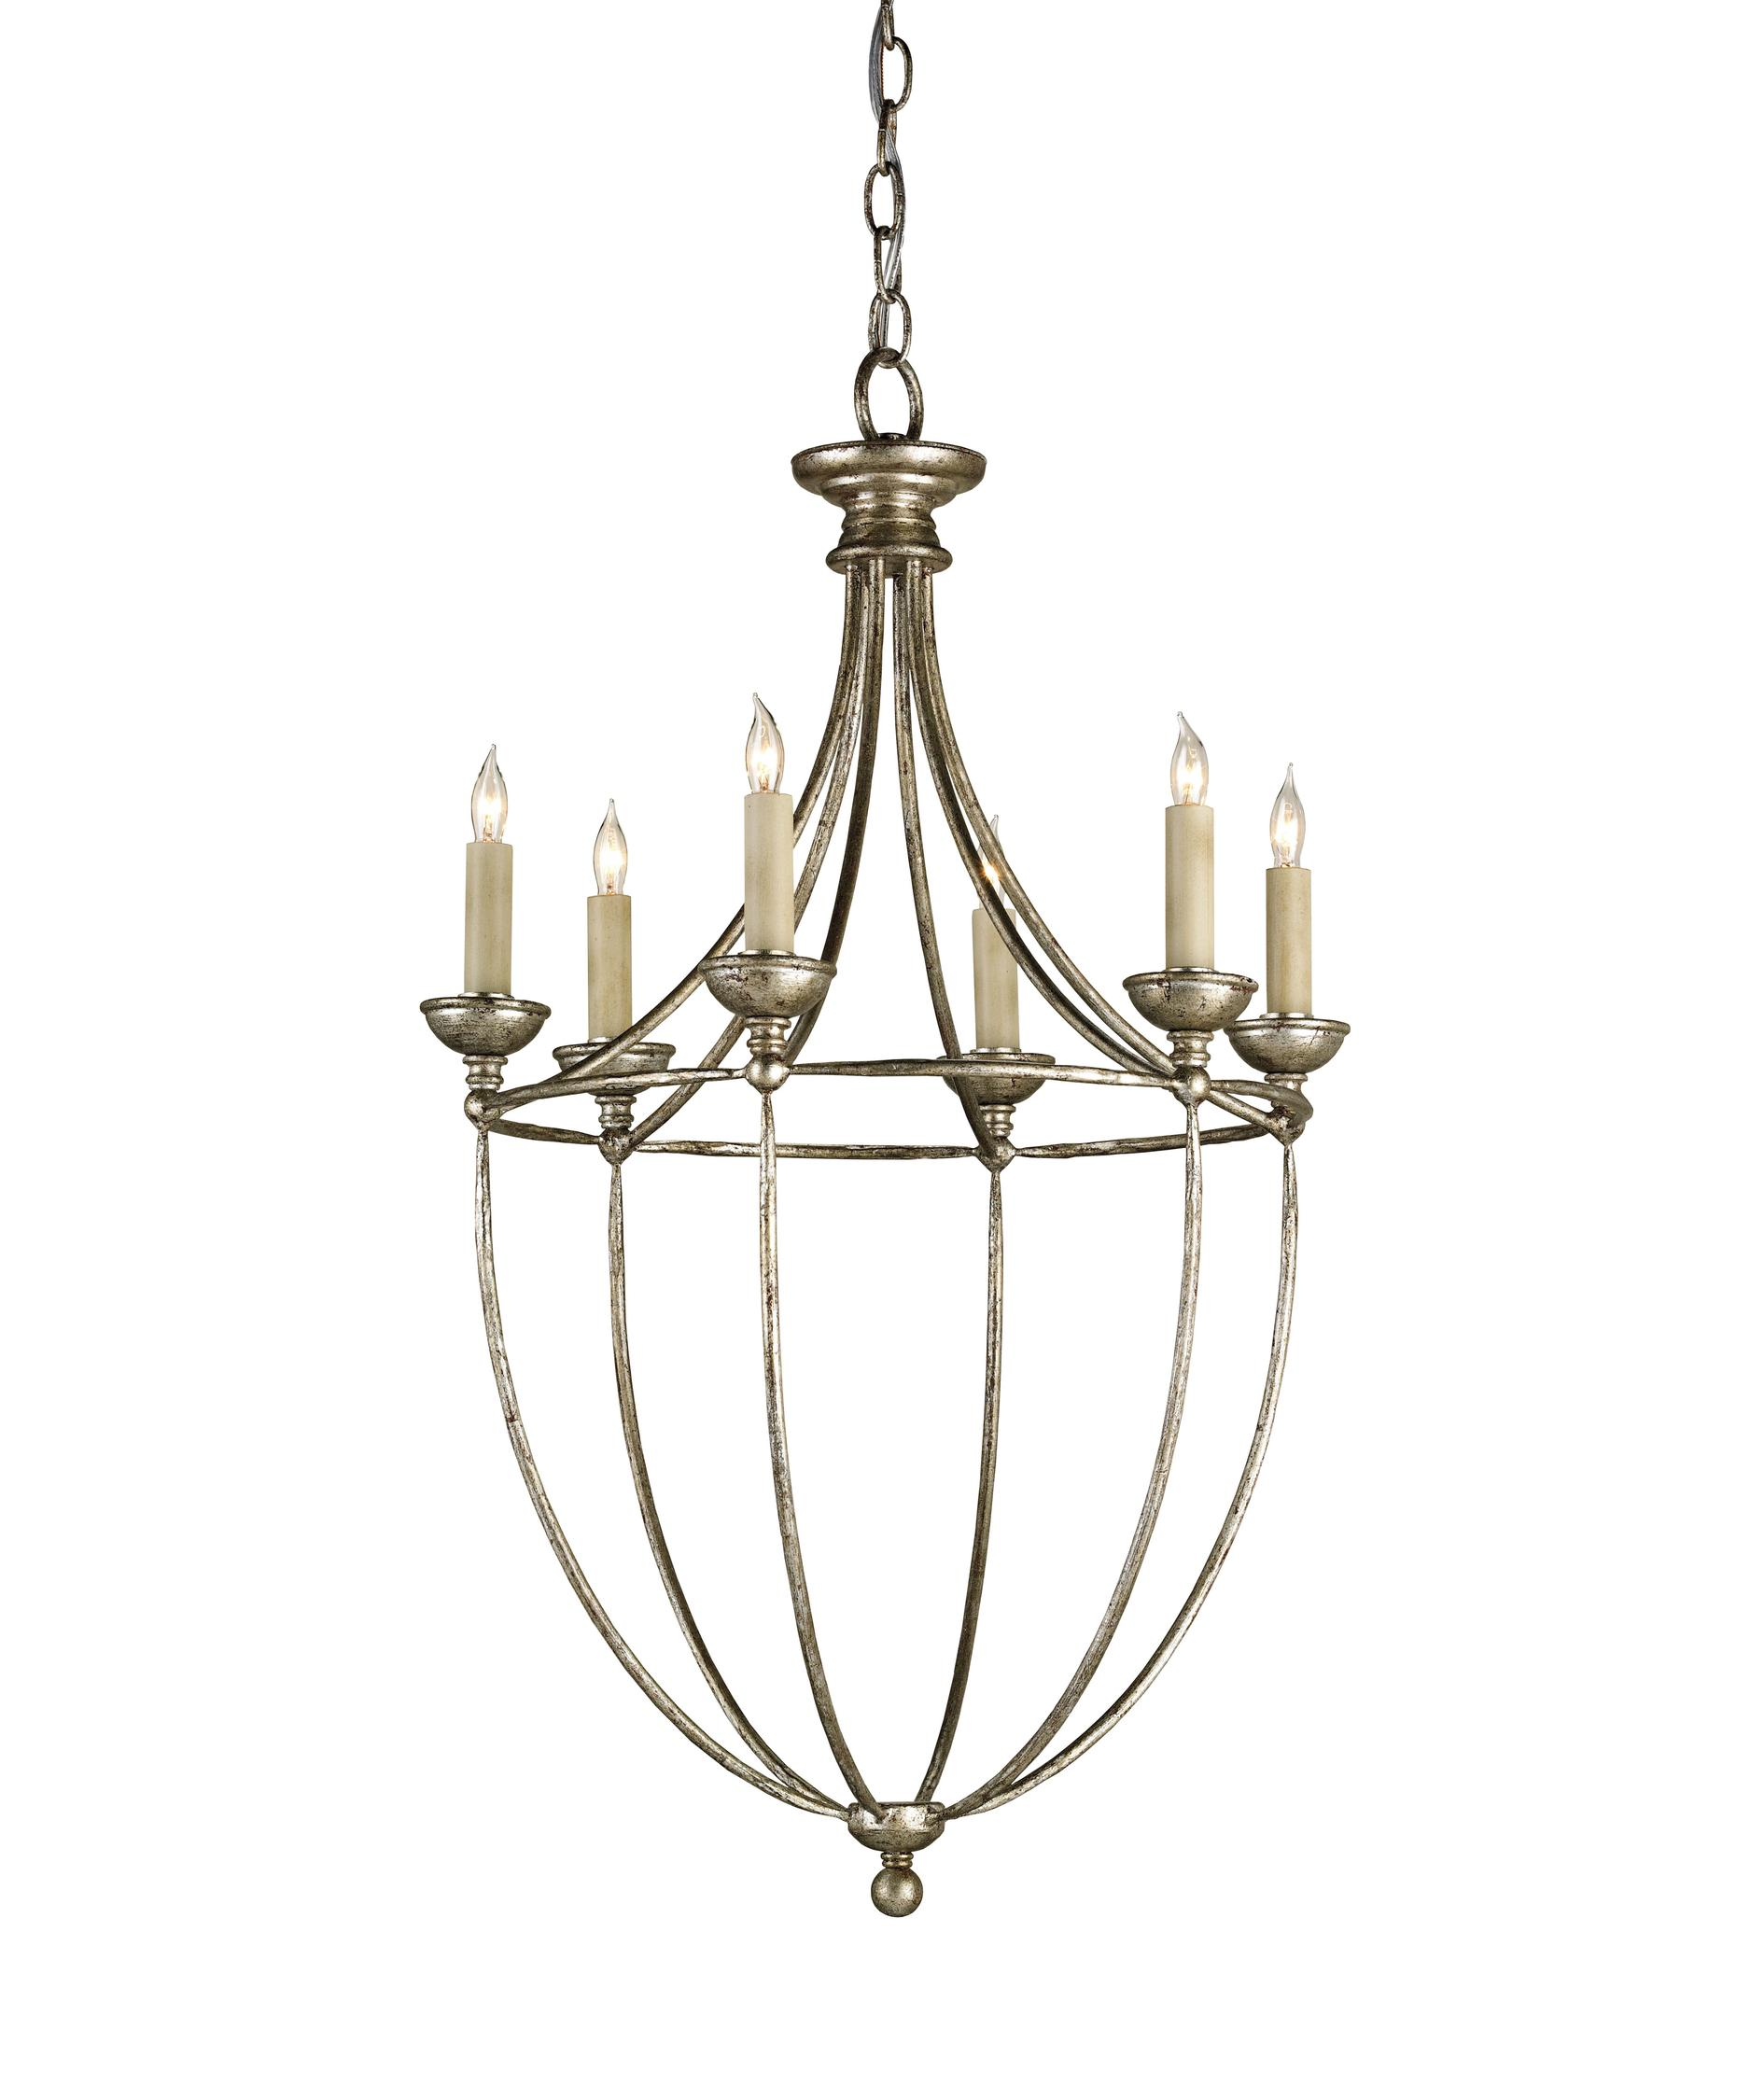 Currey And Company Bathroom Lighting: Currey And Company 9815 Celeste 19 Inch Chandelier